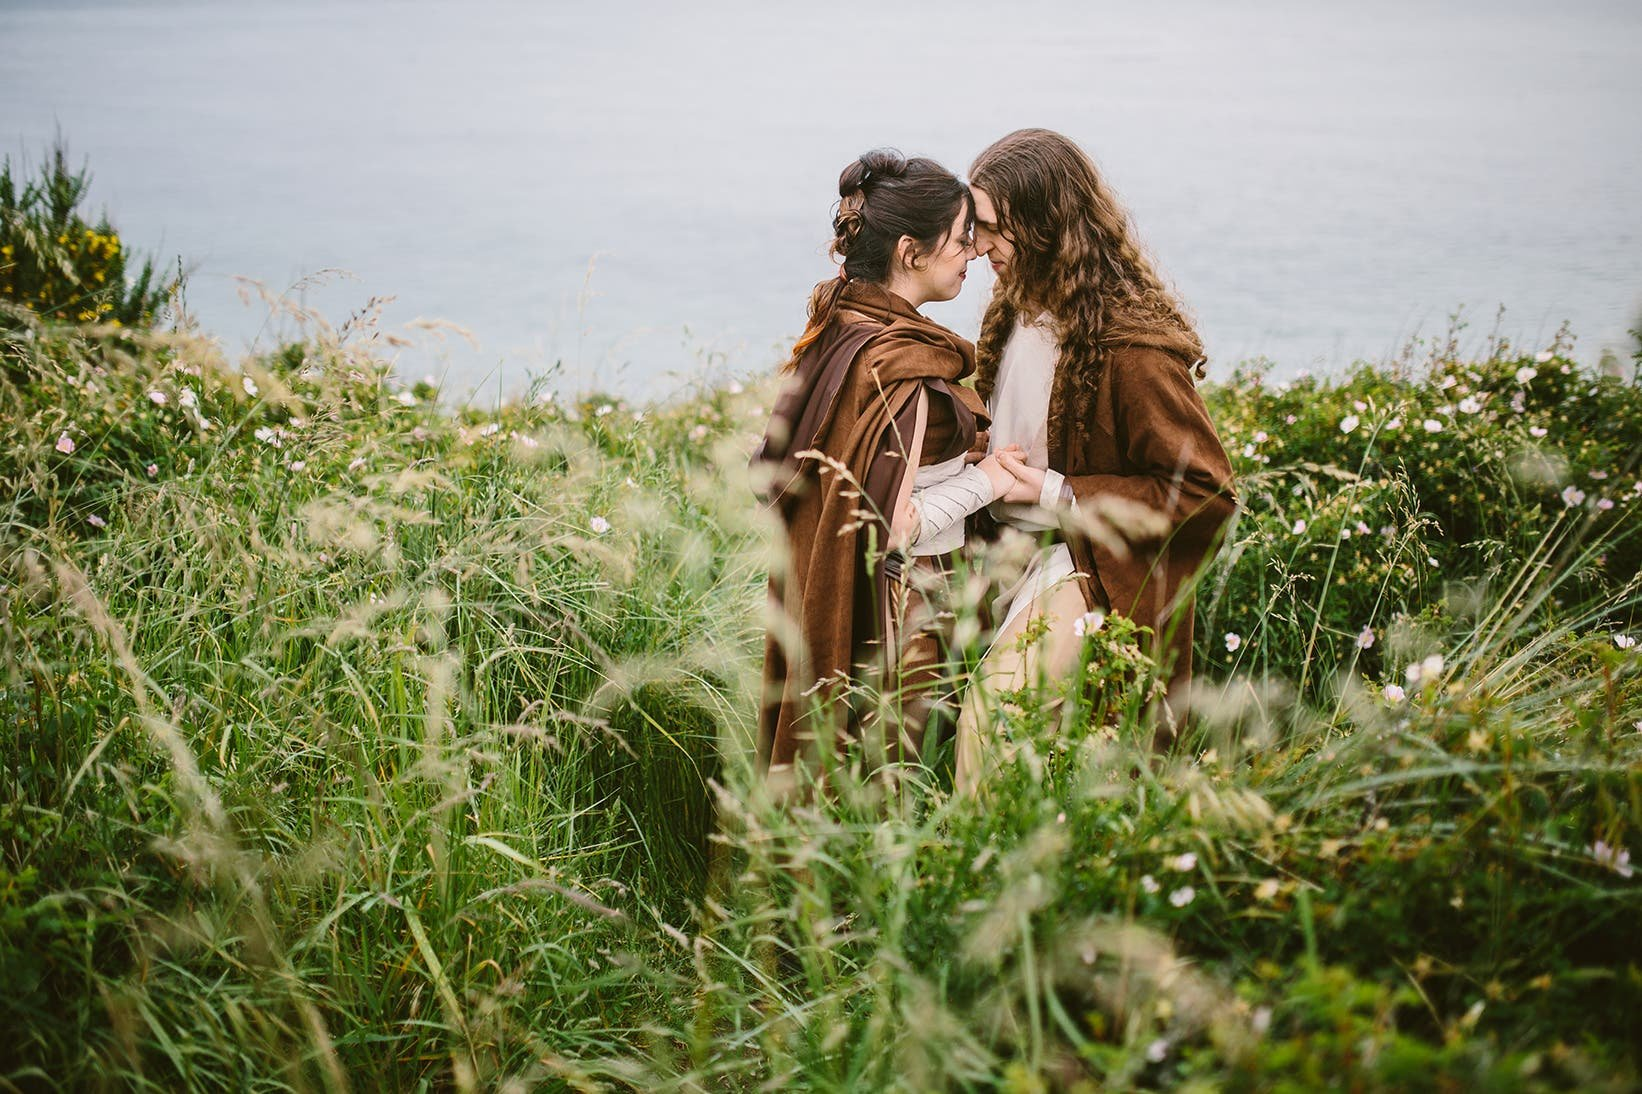 Jason Comerford's Star Wars Engagement Photo Session